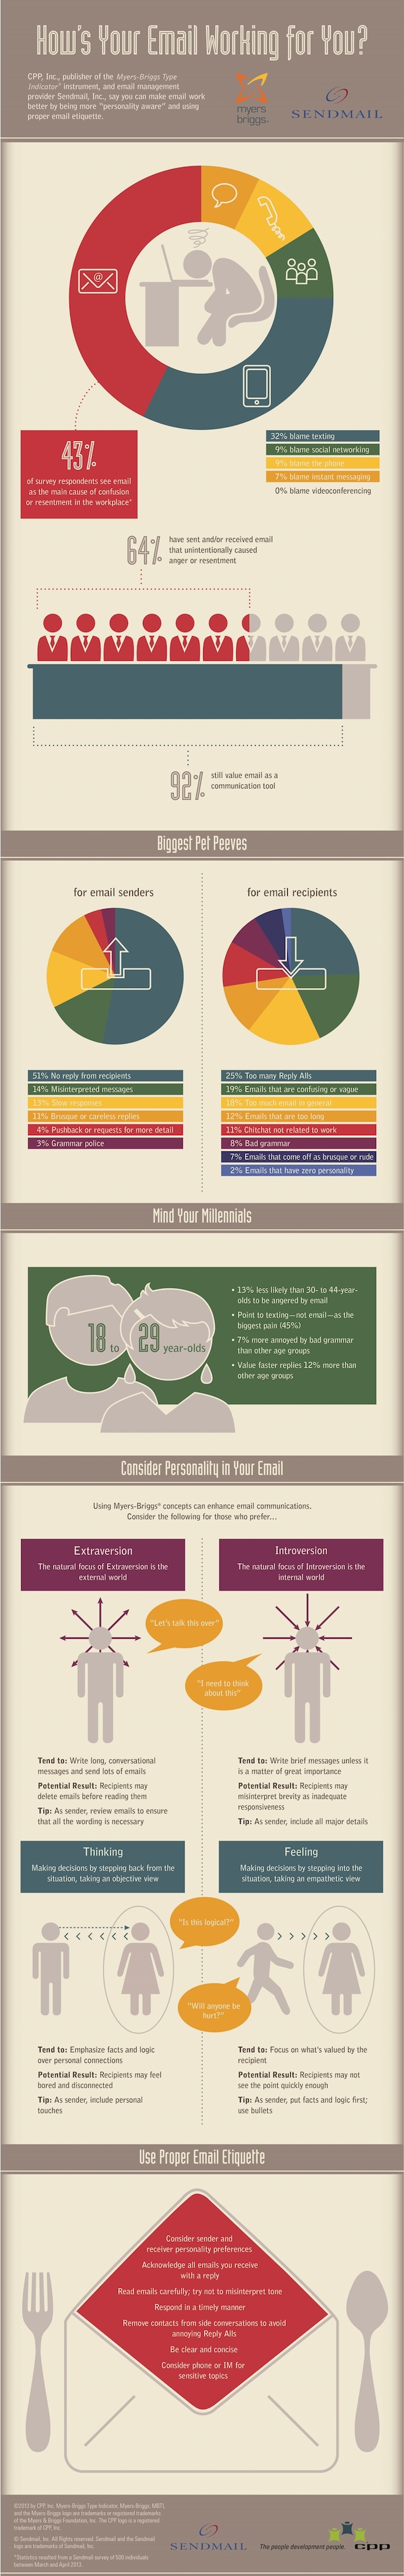 does-email-Work-Create-Resentment-infographic